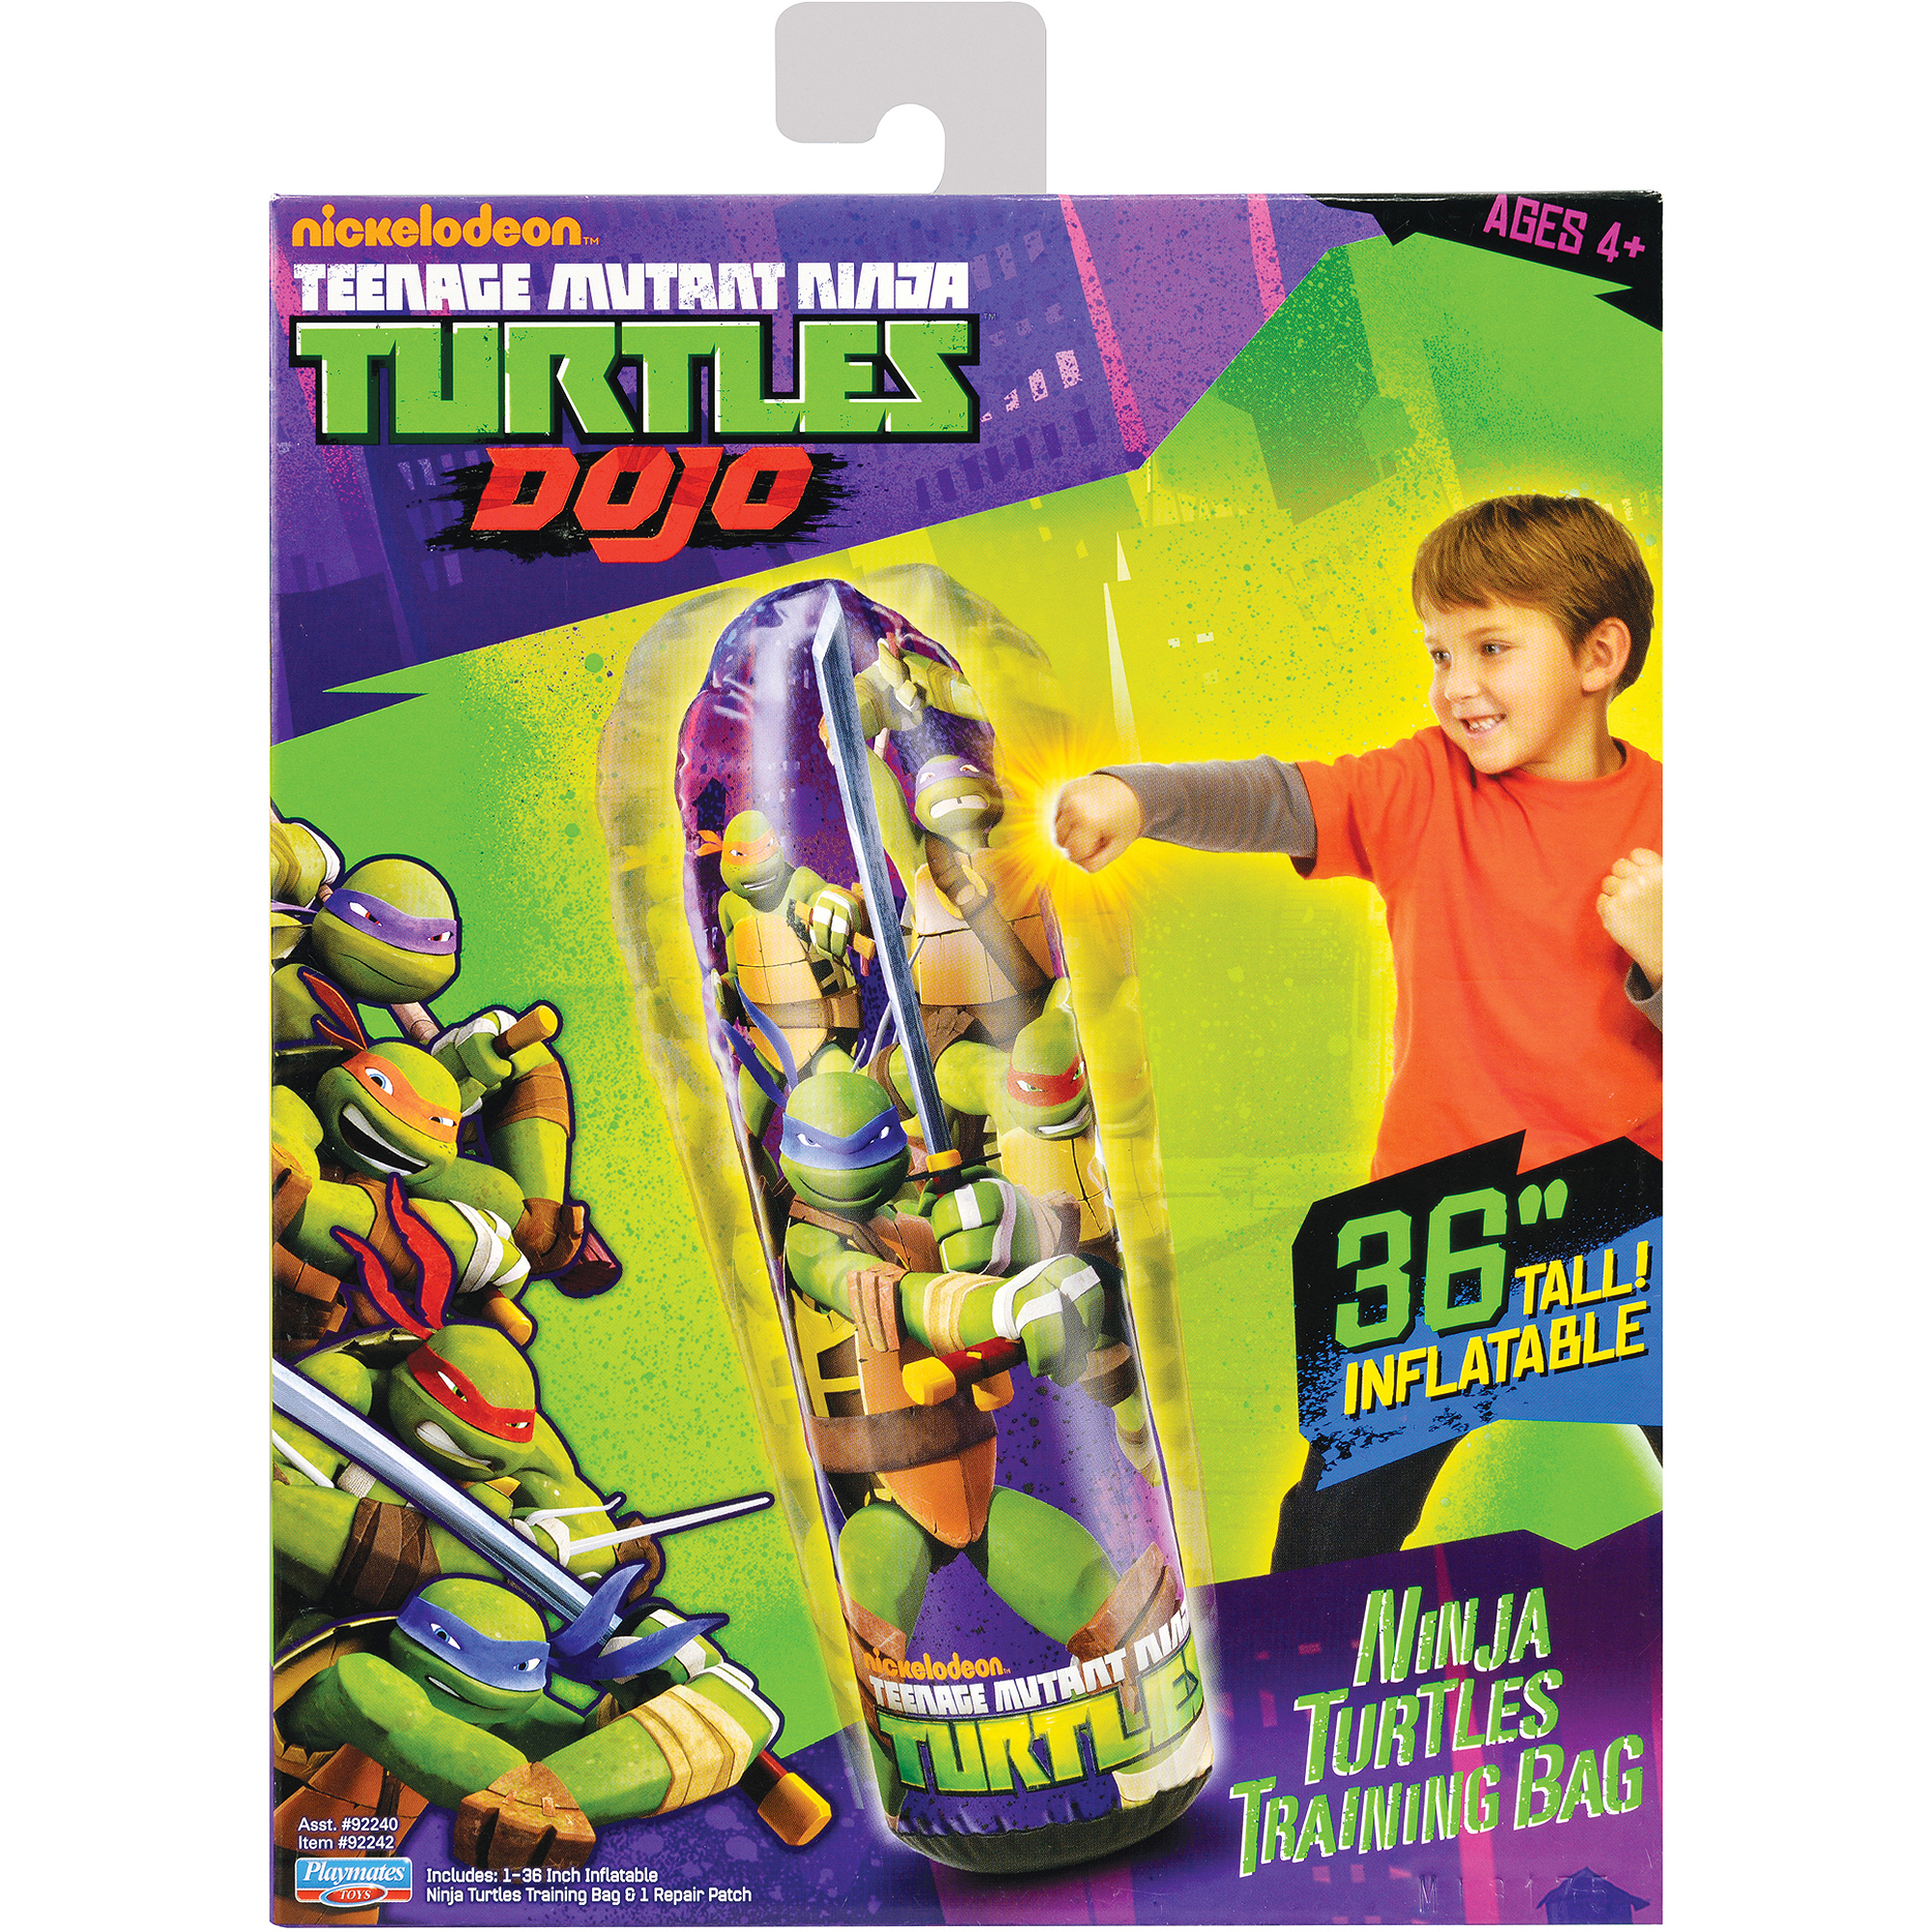 Teenage Mutant Ninja Turtles Inflatable Dojo Training Bag